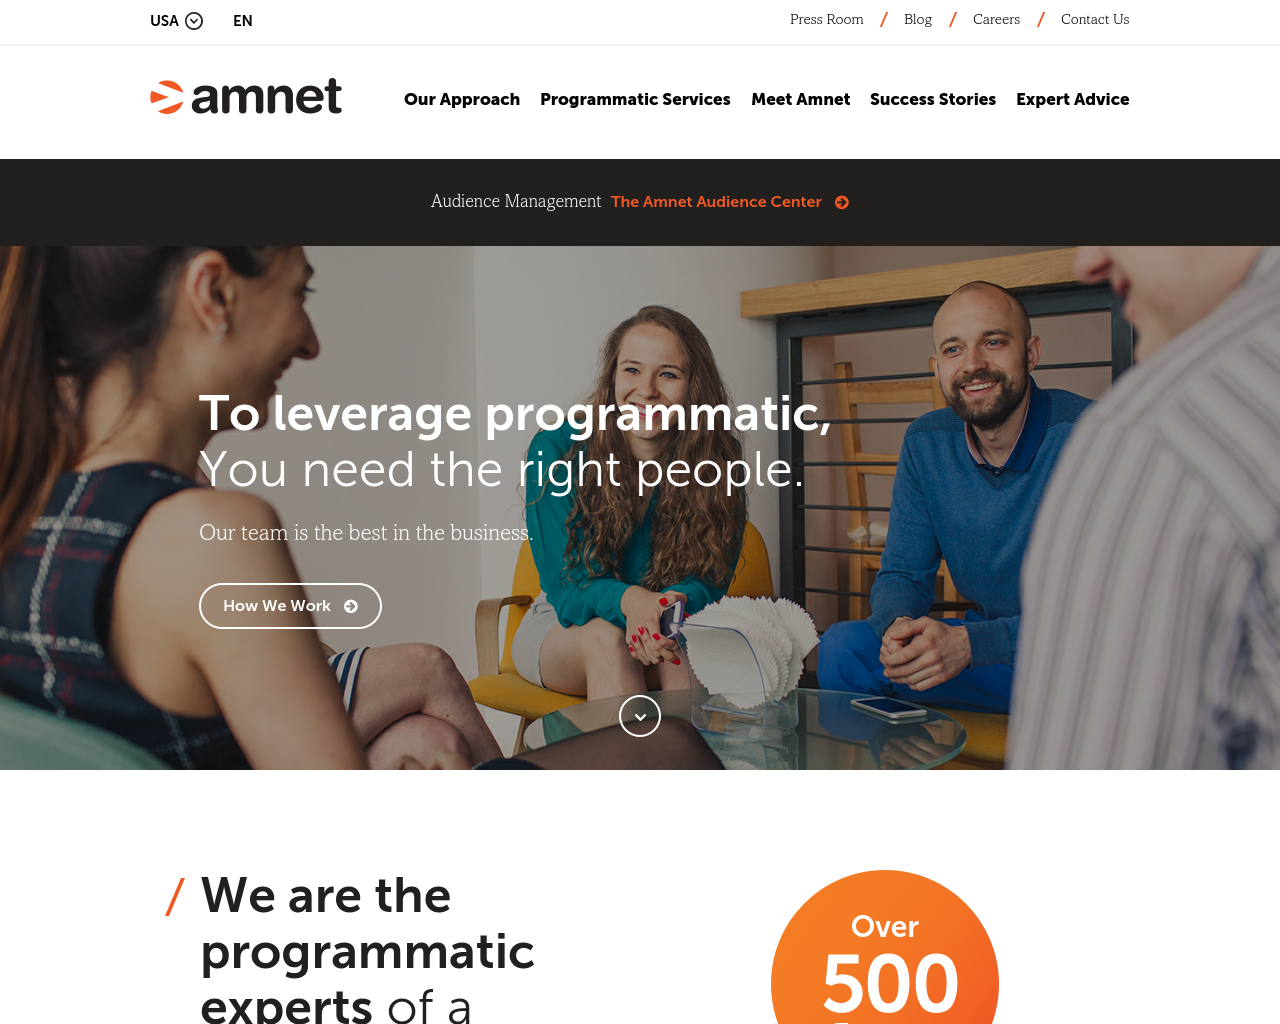 Amnet-Group-Advertising-Reviews-Pricing